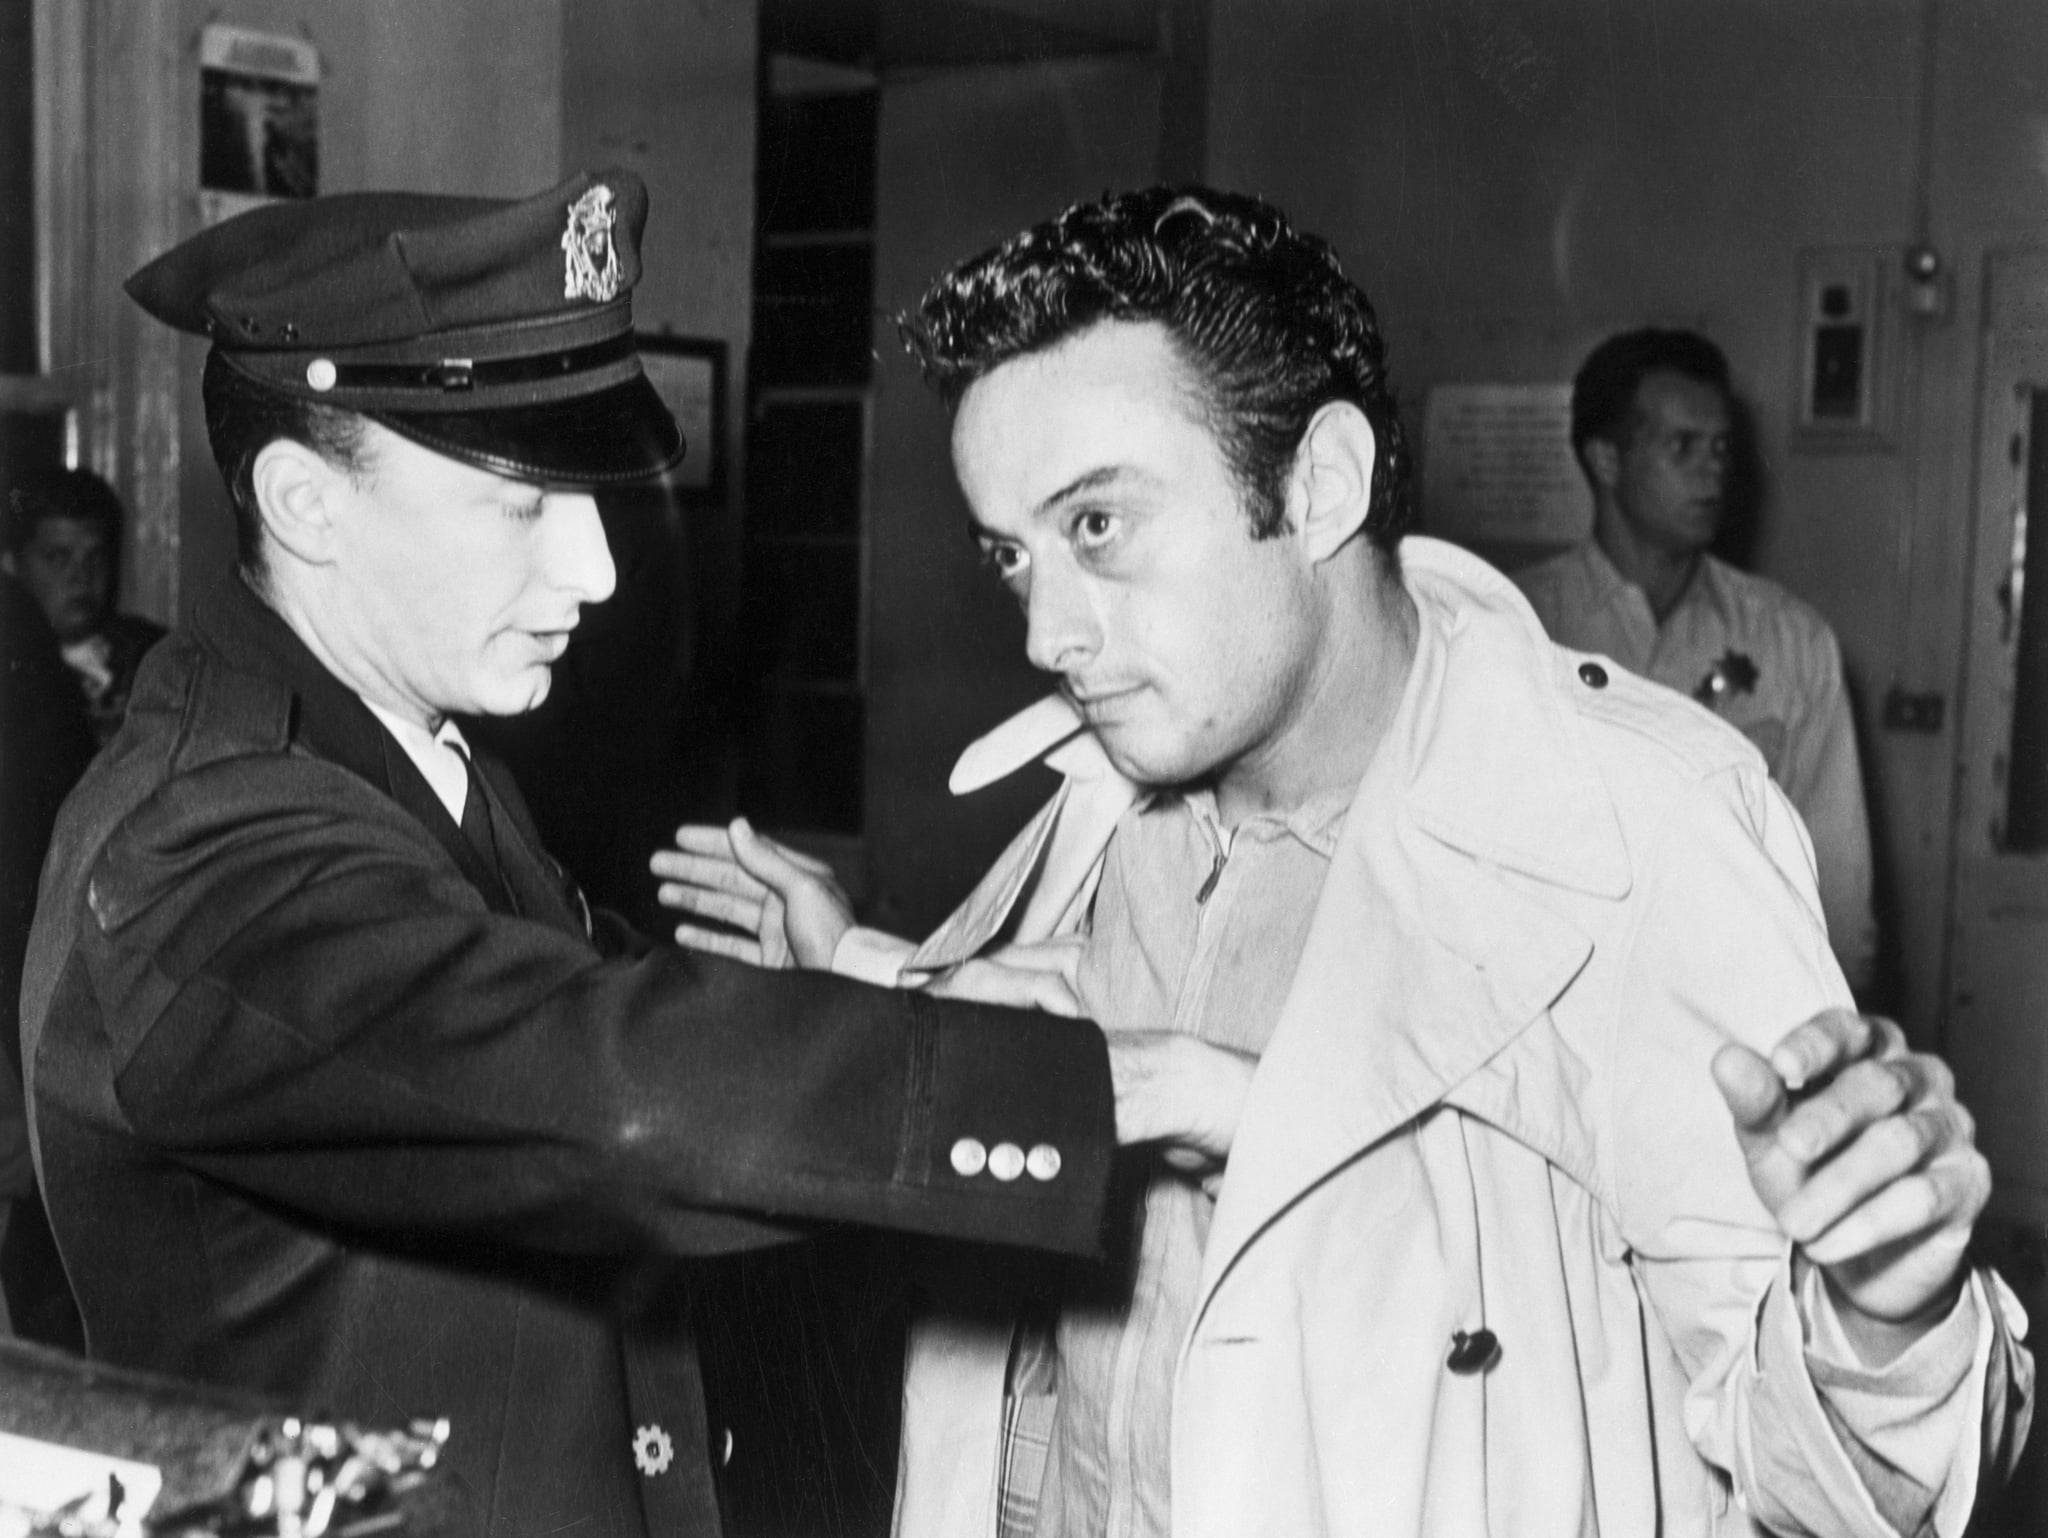 A policeman searches comedian Lenny Bruce after Bruce's arrest for allegedly using obscene language during his act in a North Beach nightclub, the Jazz Workshop. San Francisco, California.